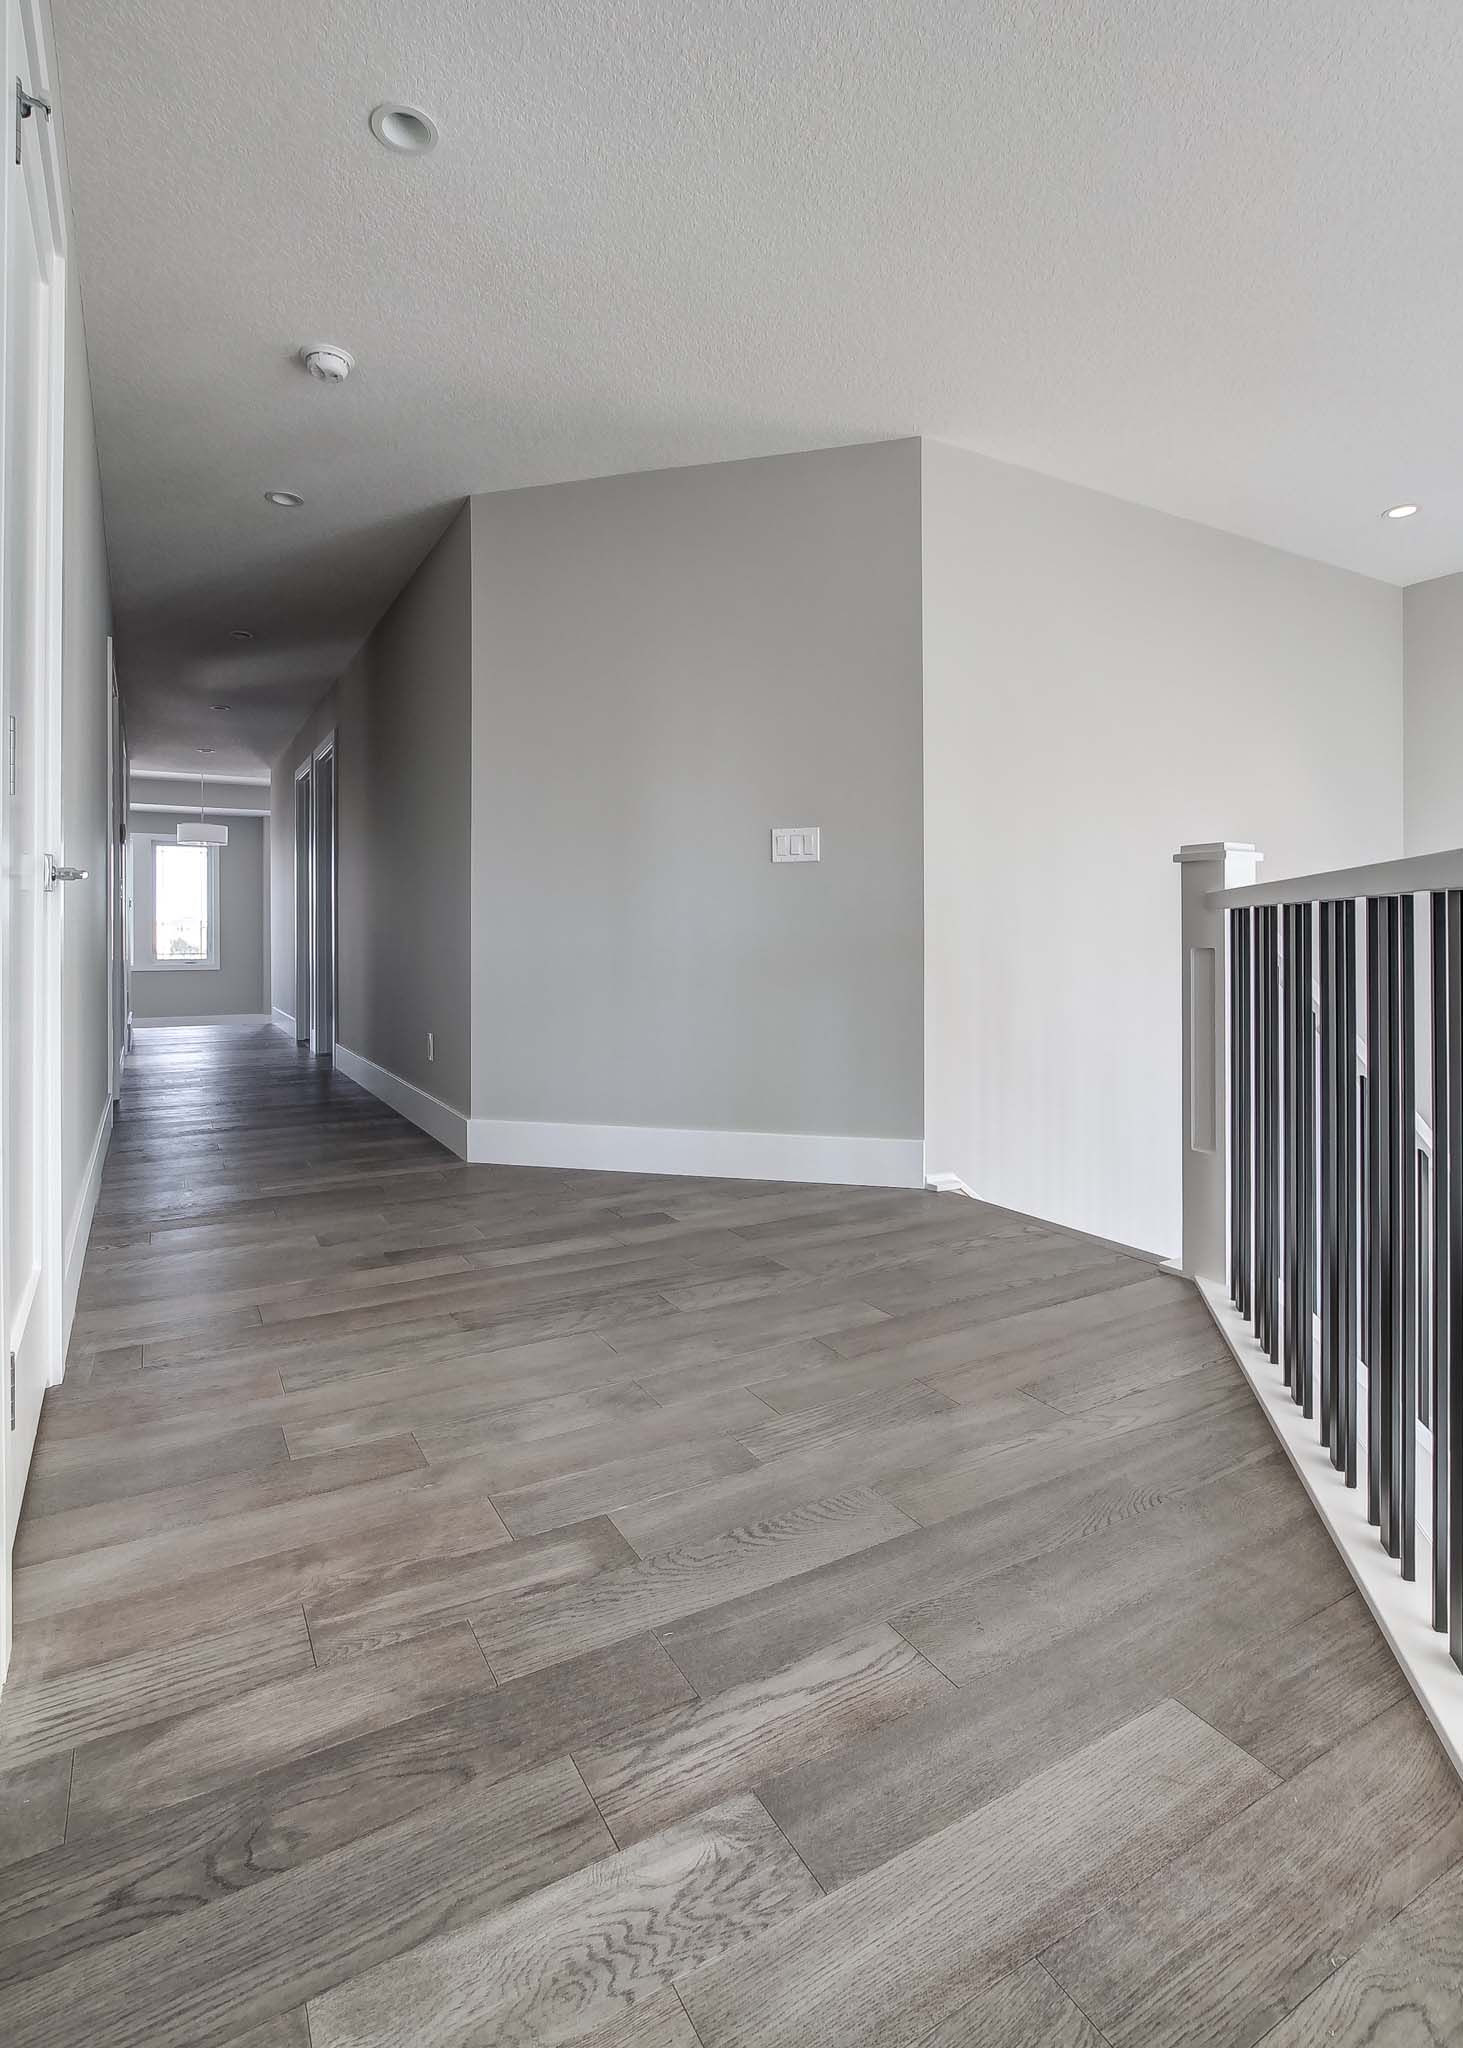 27 Stunning Hardwood Flooring wholesale Prices 2021 free download hardwood flooring wholesale prices of west point grove in calgary alberta built by truman home in west point grove in calgary alberta built by truman